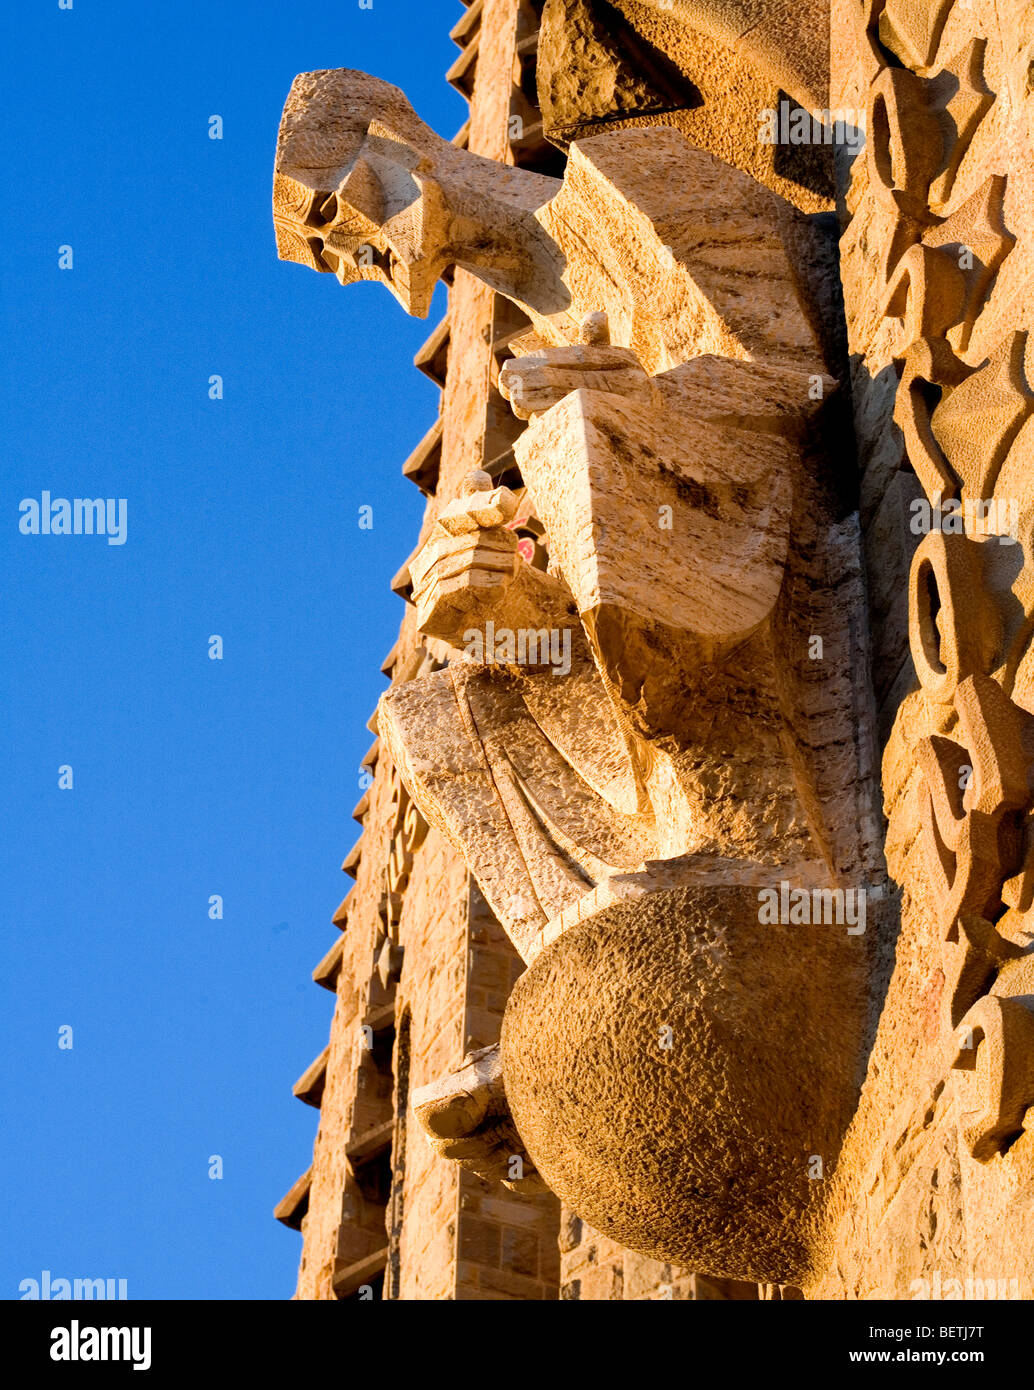 Detail of the Passion facade. - Stock Image